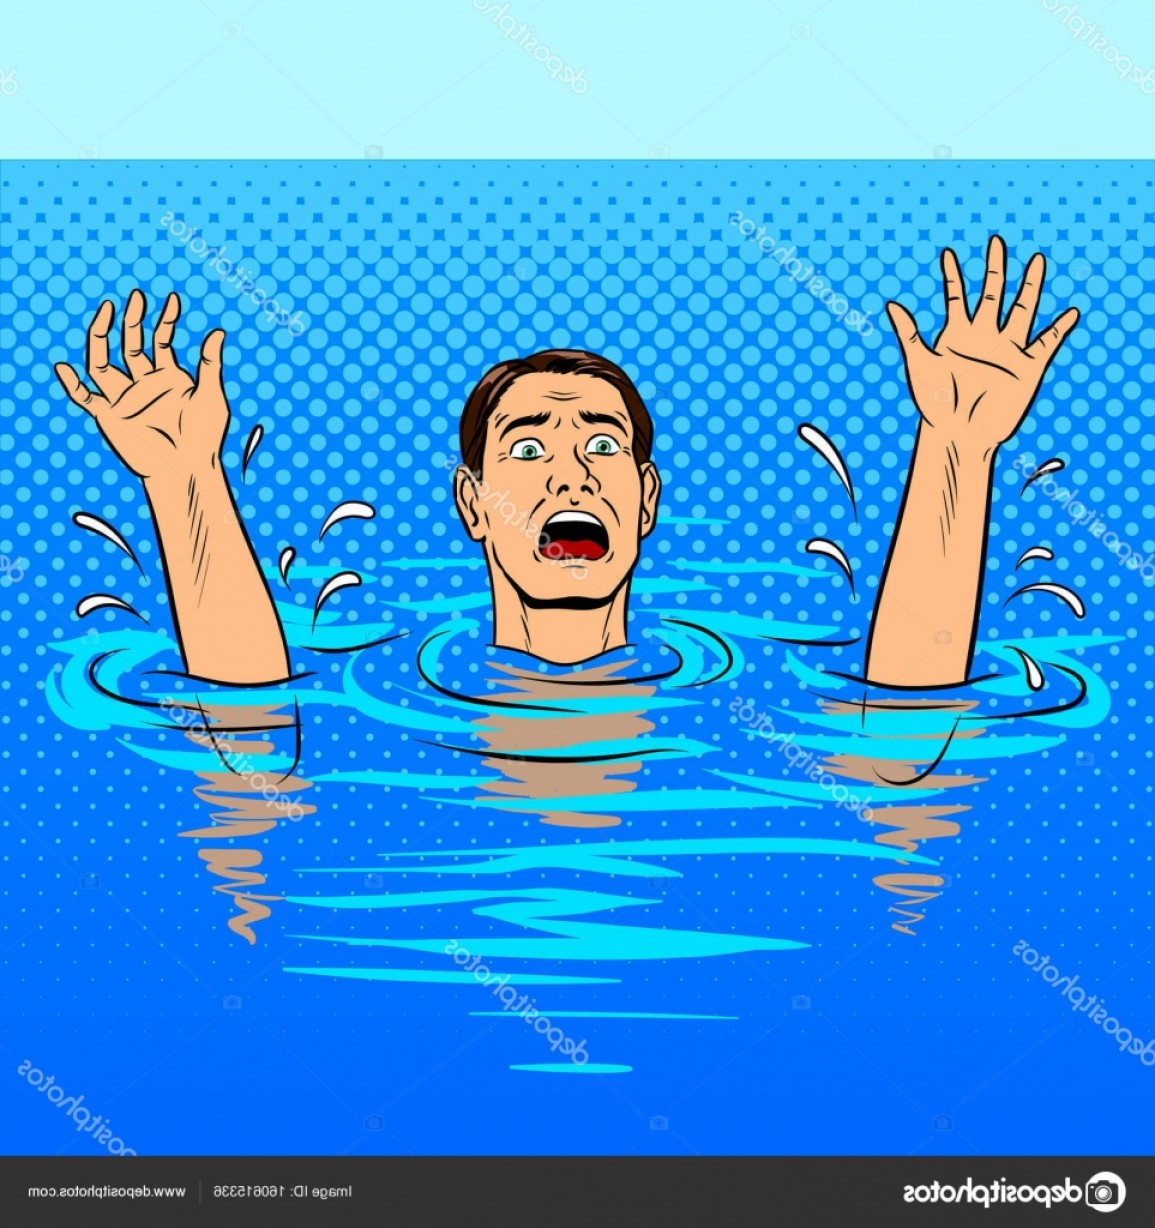 Man Drowning Vector: Stock Illustration Drowning Man Pop Art Style